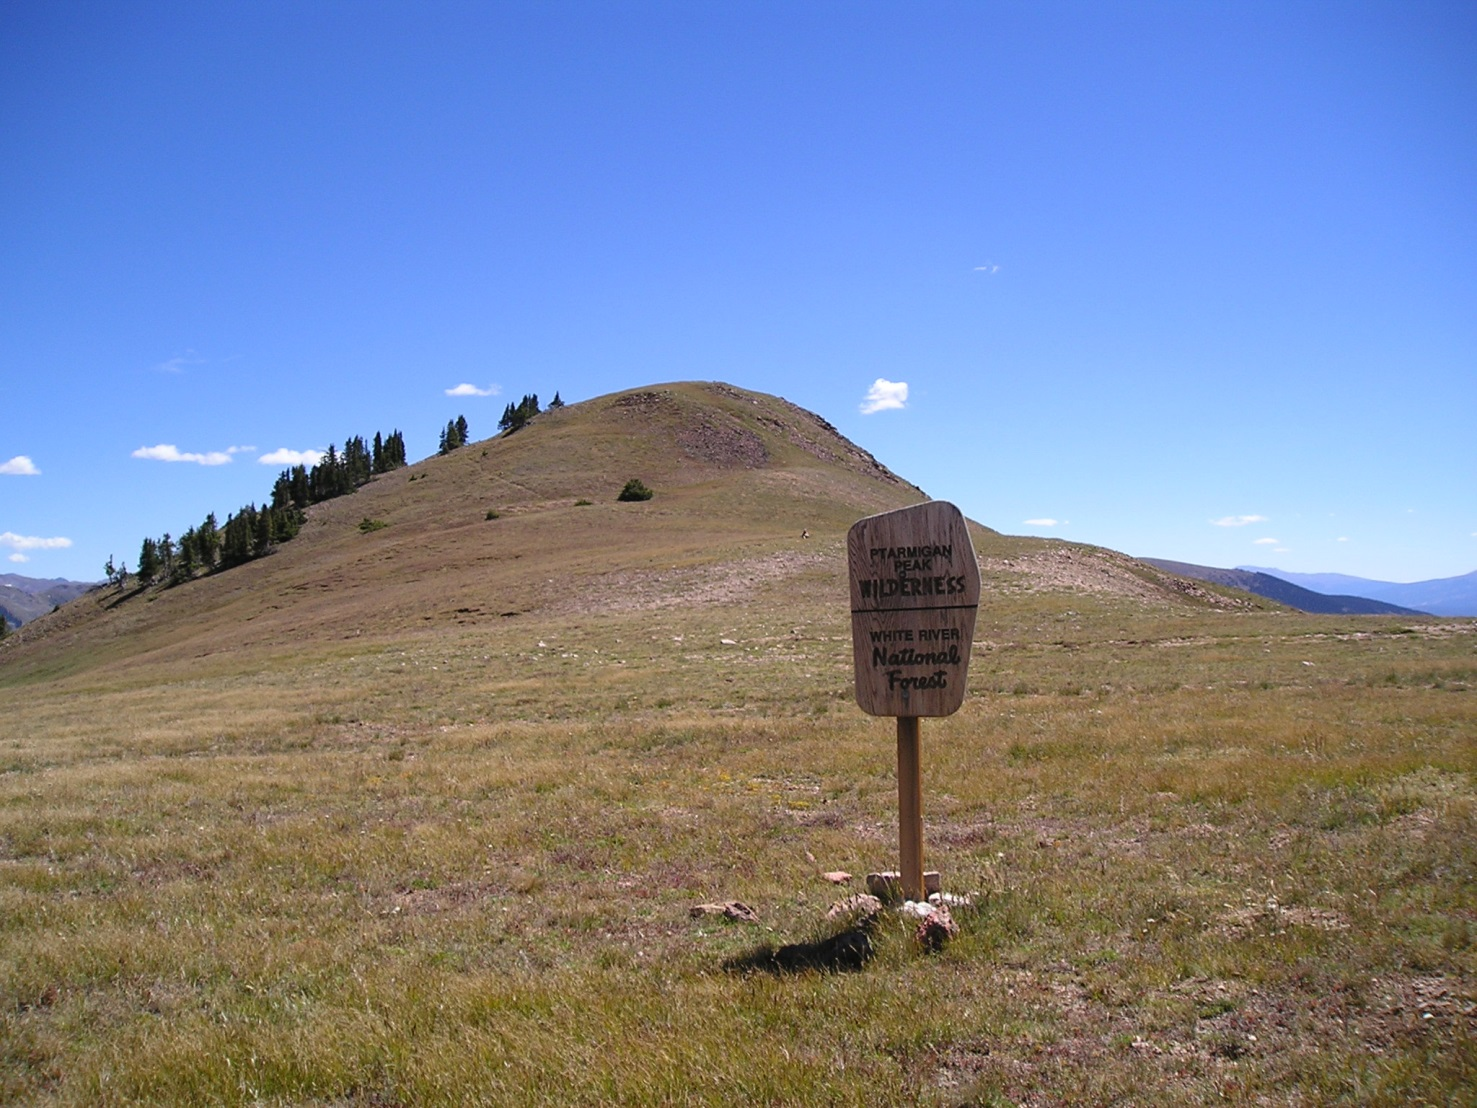 Sloped grassy knoll with Wilderness sign in foreground.